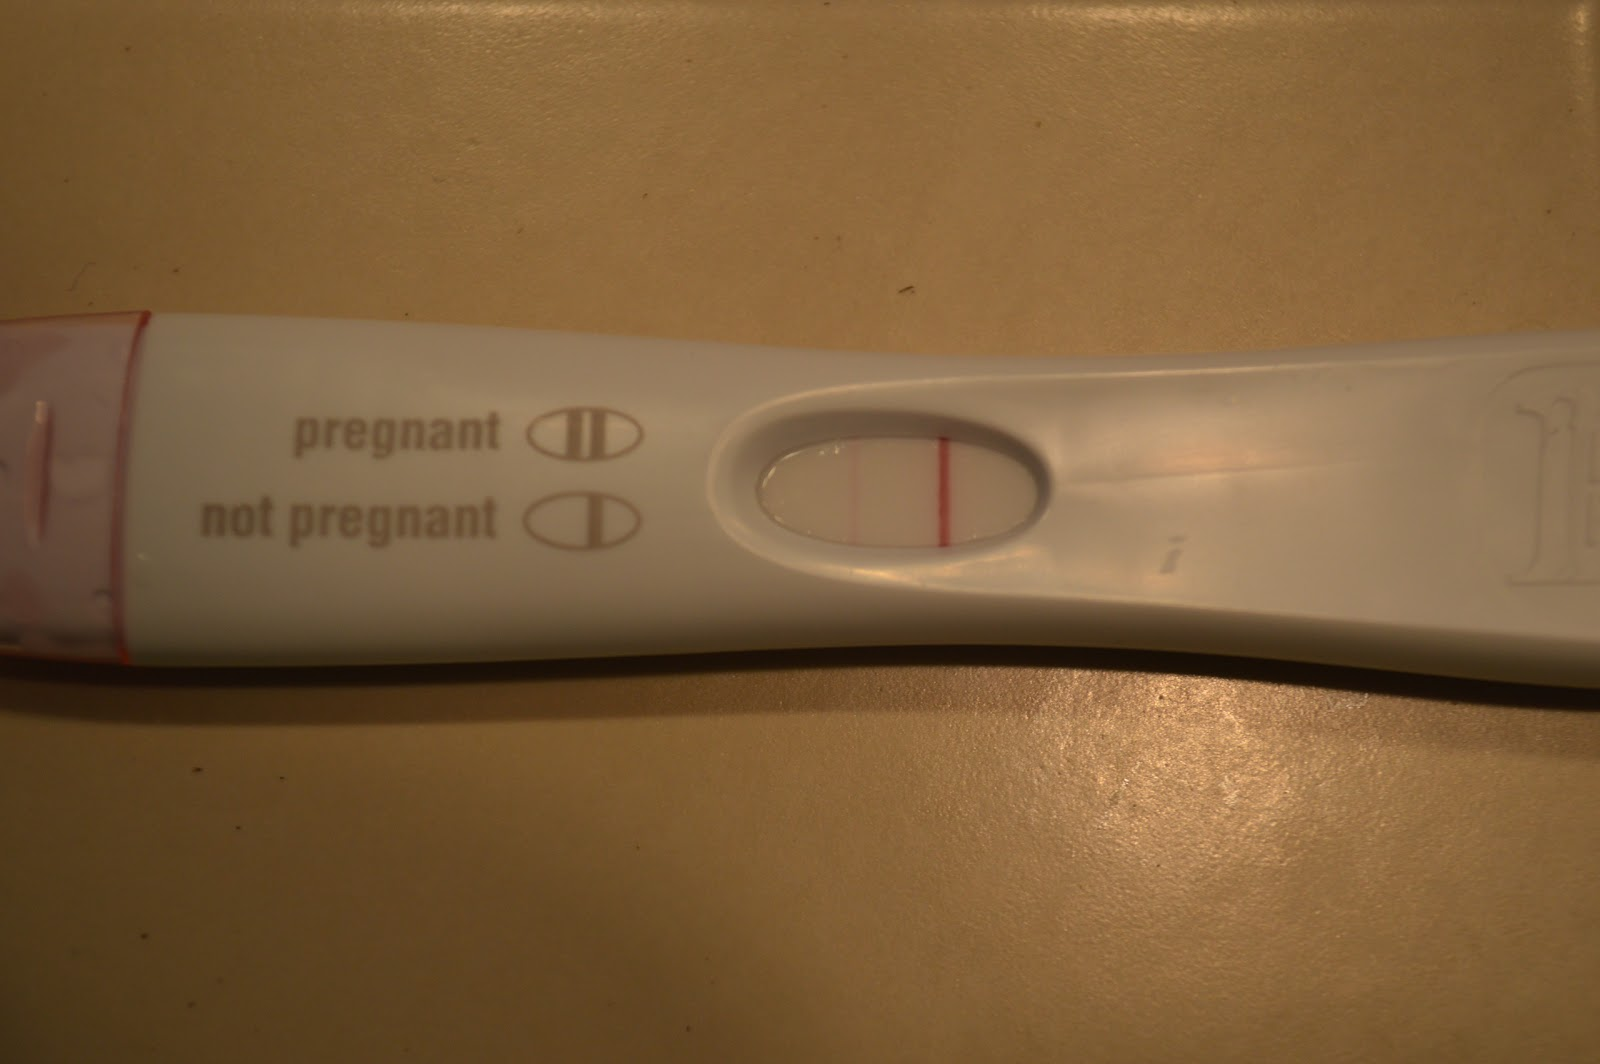 dating pregnancy test How doctors date pregnancies, explained oct 17, 2013, 9:12am dr anne davis a health-care provider explains the three methods of pregnancy dating—last menstrual period, ultrasound, and a physical exam—and how medical professionals use them.